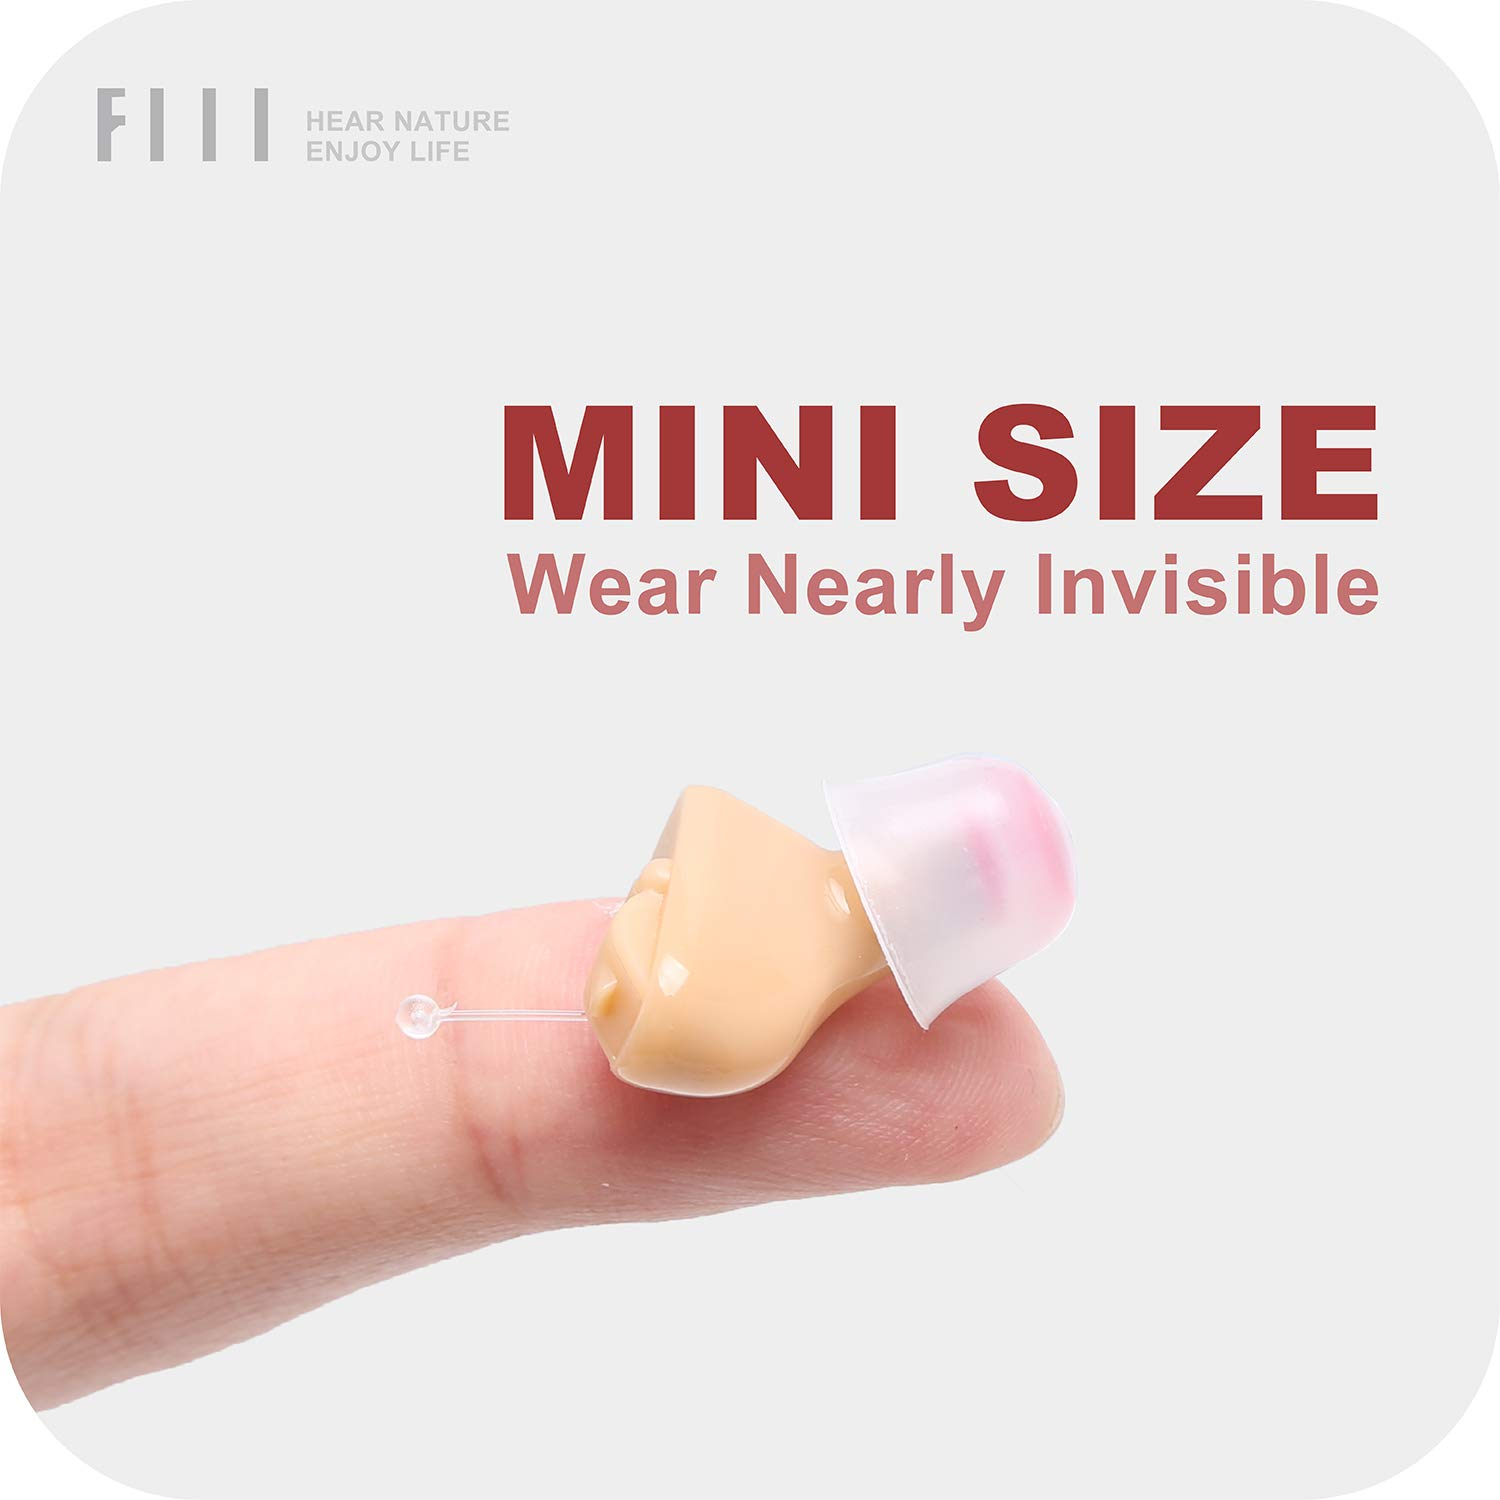 Hearing Amplifier Mini Sound Amplifier with 2 Batteries A10 - Premium Hearing Assist by FIIL by FIIL